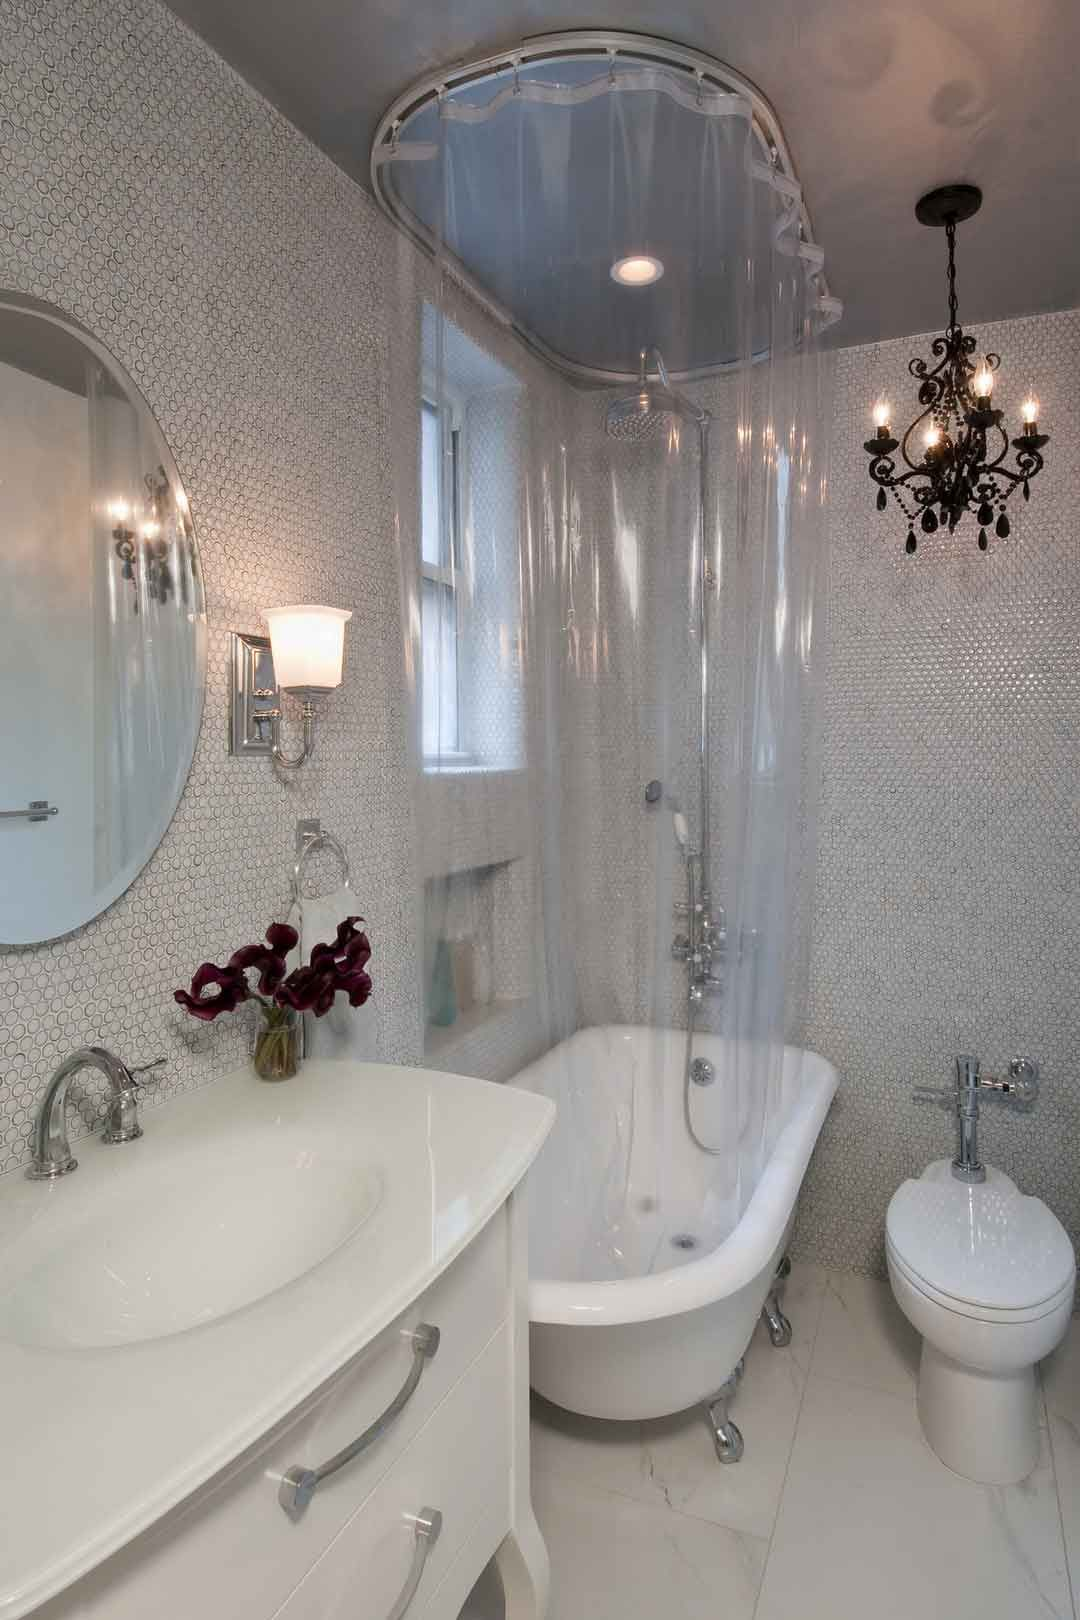 Bathroom Design : Dreamy Small Bathroom Design With White Vanity And ...